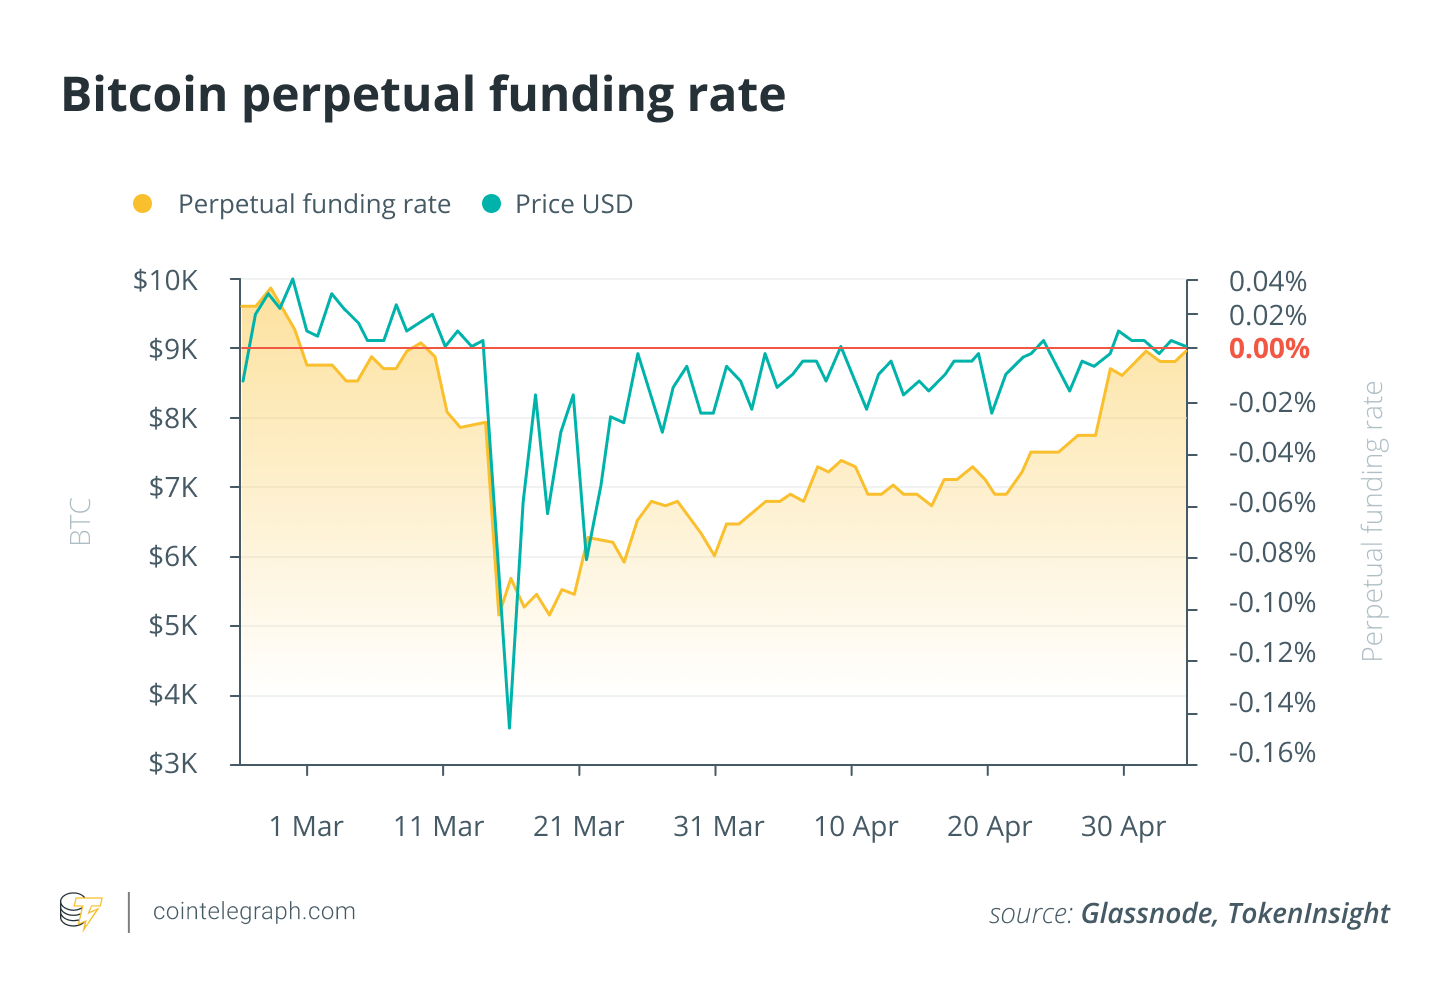 Bitcoin perpetual funding rate